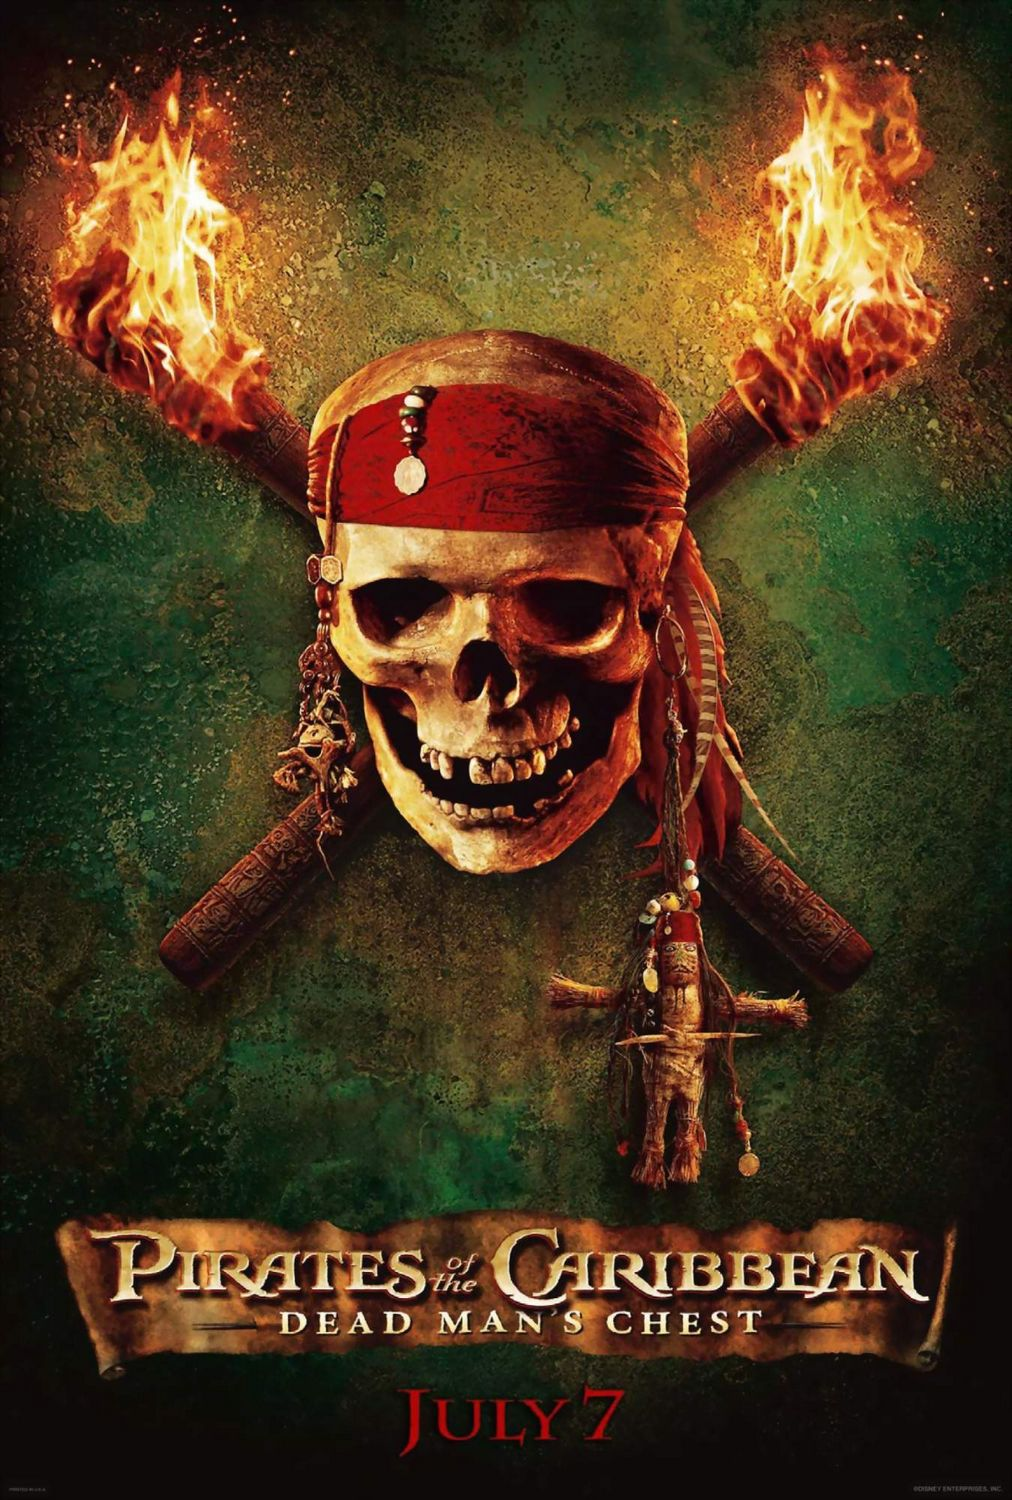 pirates_of_the_caribbean_dead_mans_chest_poster_2006_01.jpg